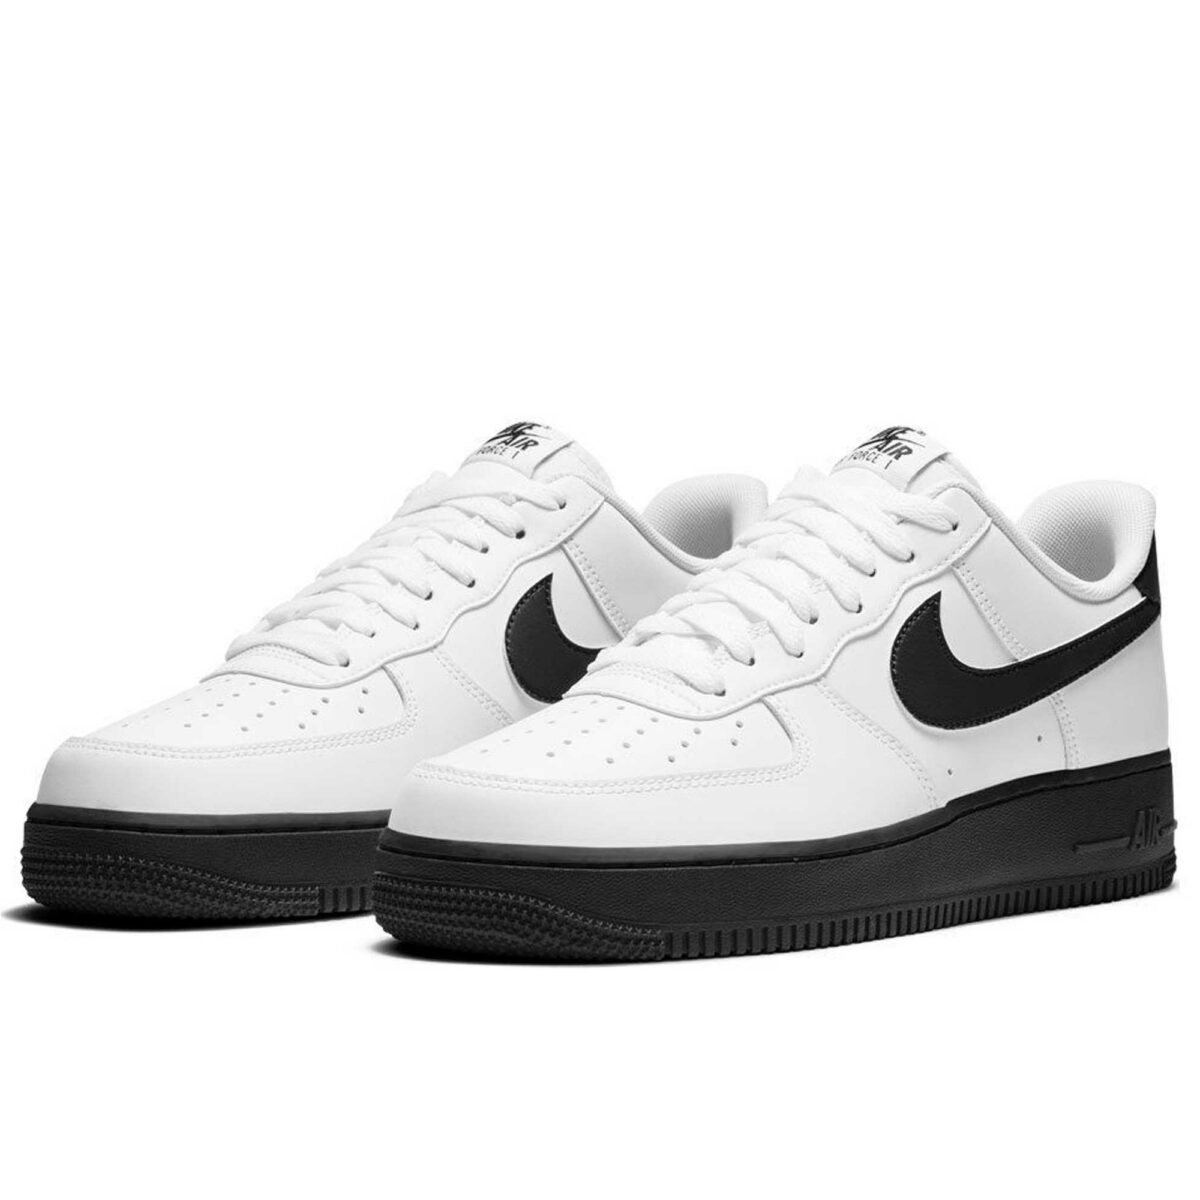 nike air force white black 1' 07 CK7663_101 купить